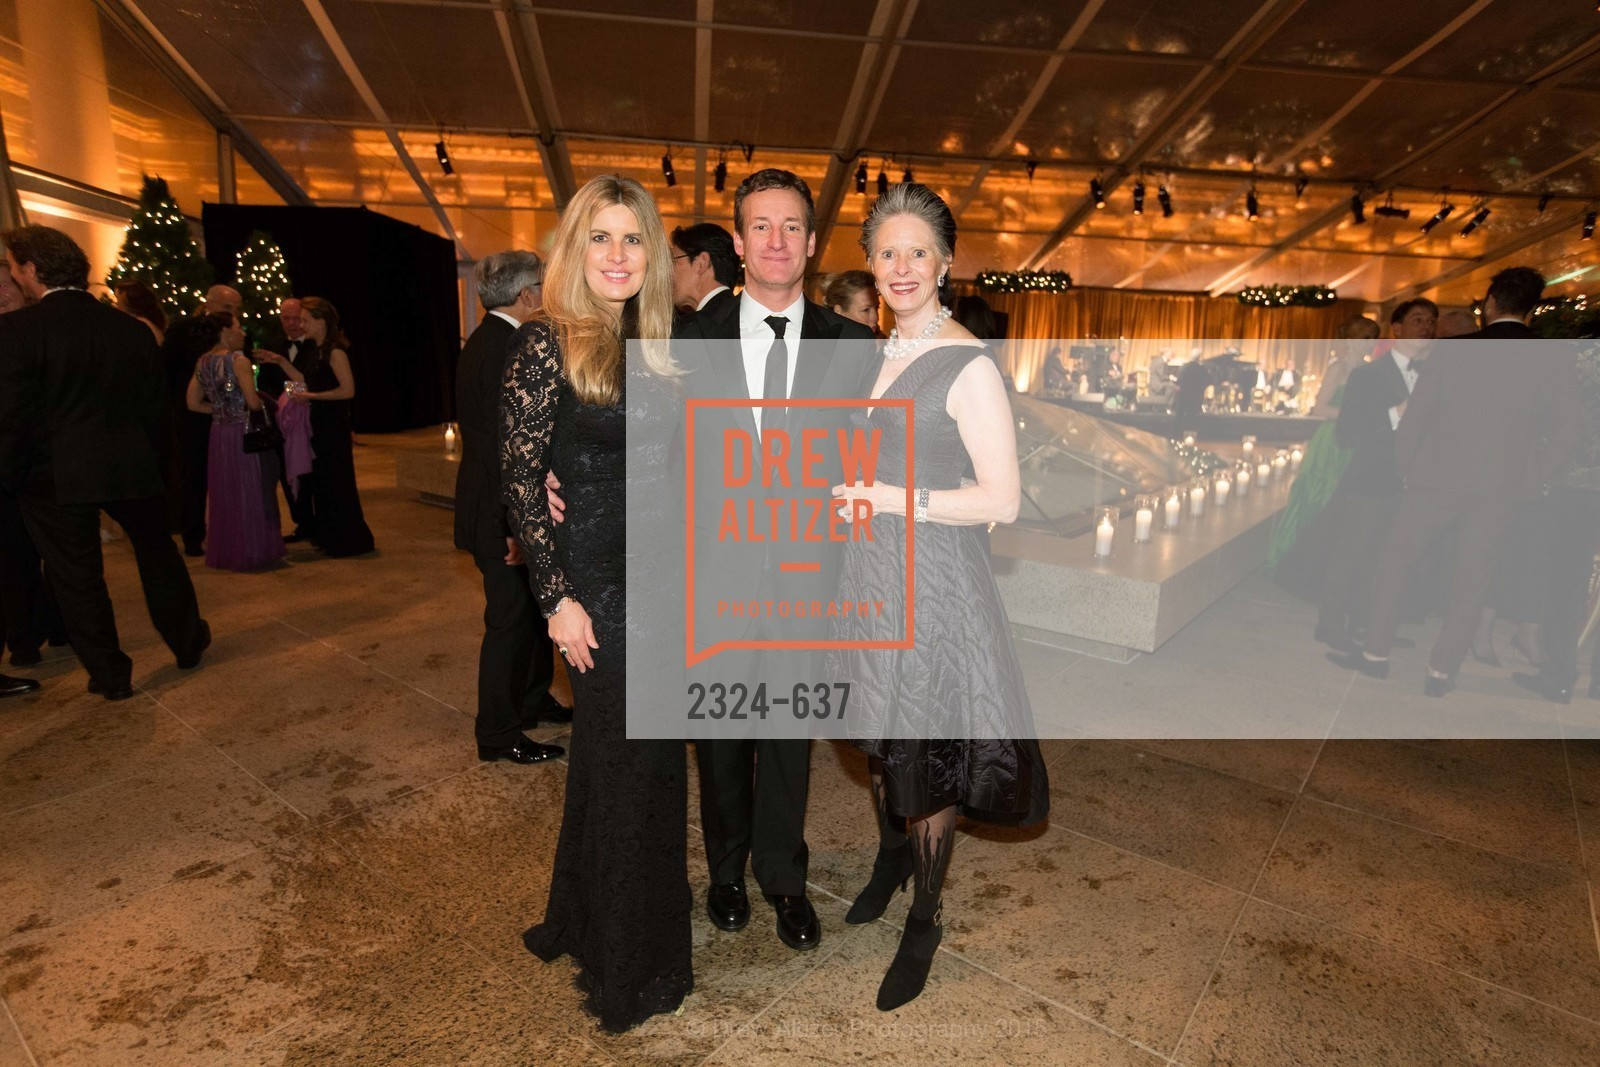 Suzanne Levit, Todd Traina, Meriwether McGettigan, AN ELEGANT EVENING Presented by the Fine Arts Museums of San Francisco, Legion of Honor, Court of Honor. 100 34th Ave, December 8th, 2015,Drew Altizer, Drew Altizer Photography, full-service agency, private events, San Francisco photographer, photographer california